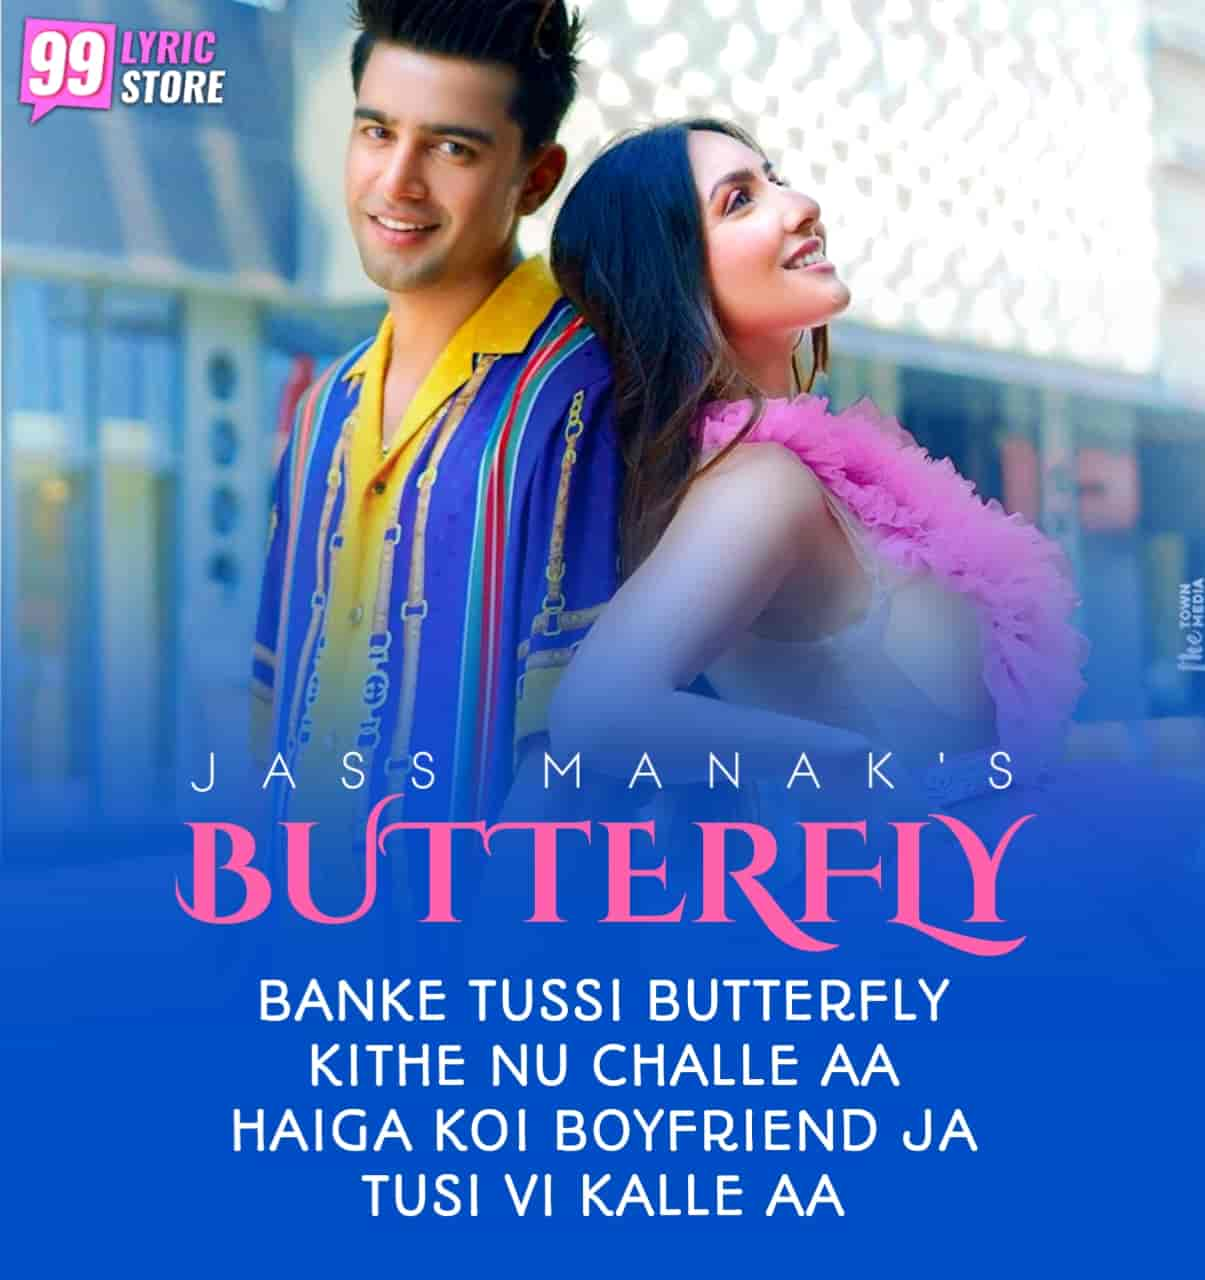 Banke Tussi Butterfly Punjabi Song Image Features Jass Manak